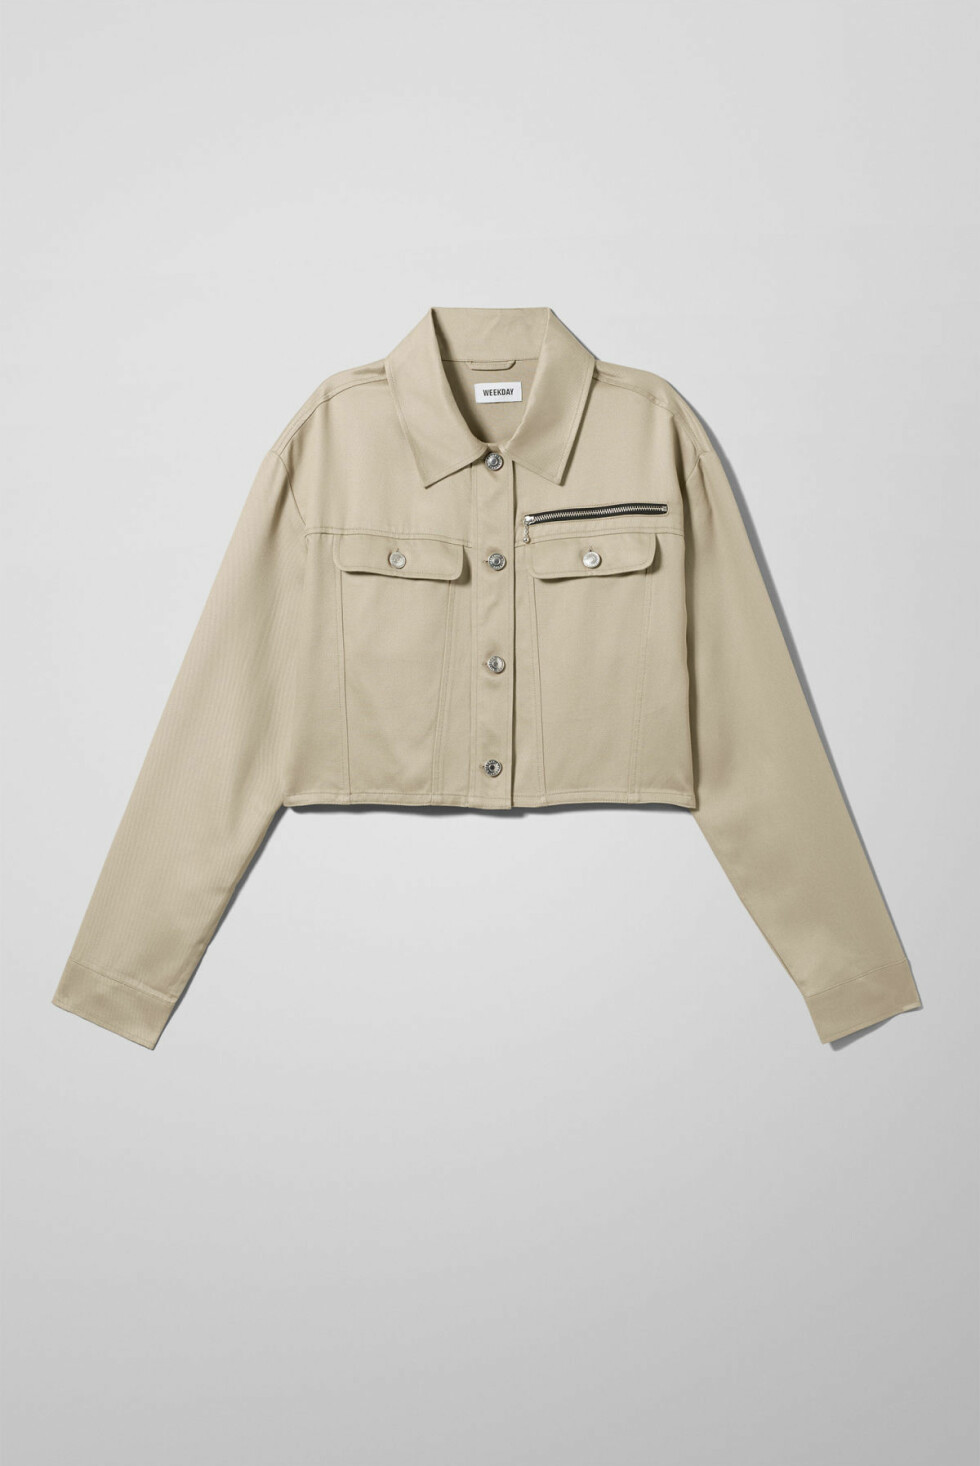 Jakke fra Weekday |600,-| https://www.weekday.com/en_sek/women/categories/new-arrivals/product.carin-shirt-jacket-beige.0709682001.html